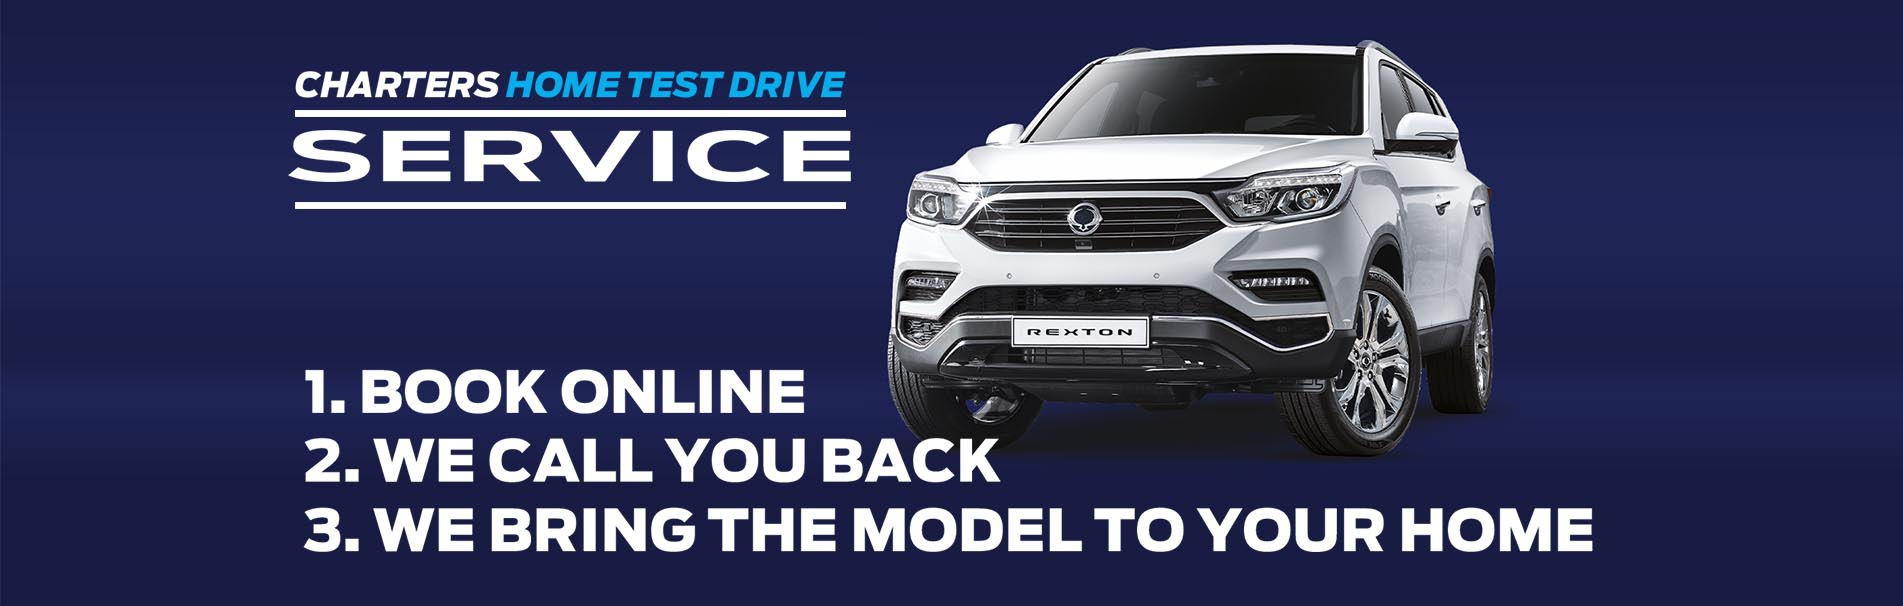 charters-ssangyong-home-test-drive-service-sli